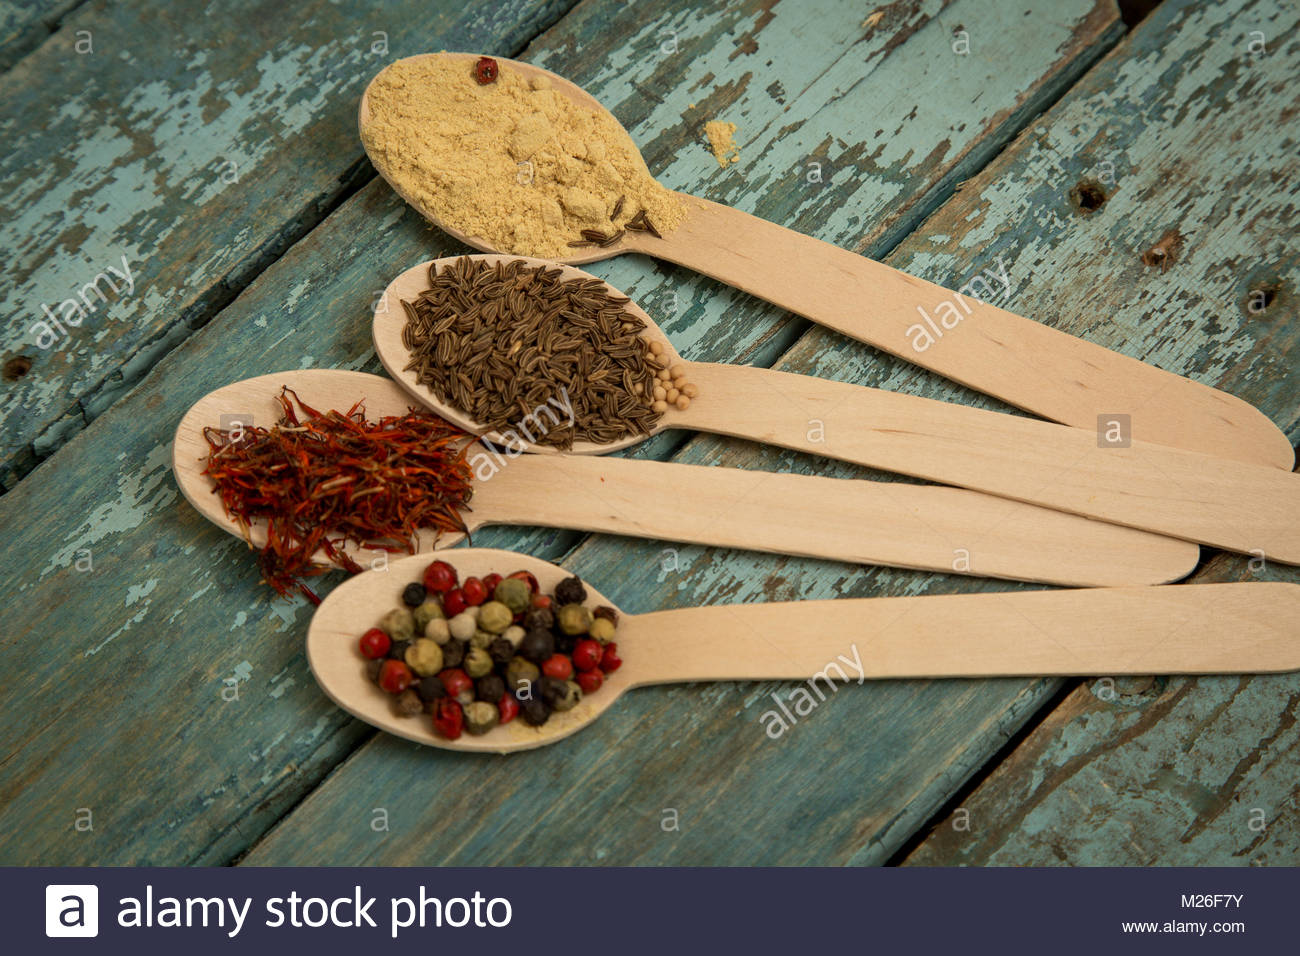 Mixed peppercorns in a wooden bowl - Stock Image